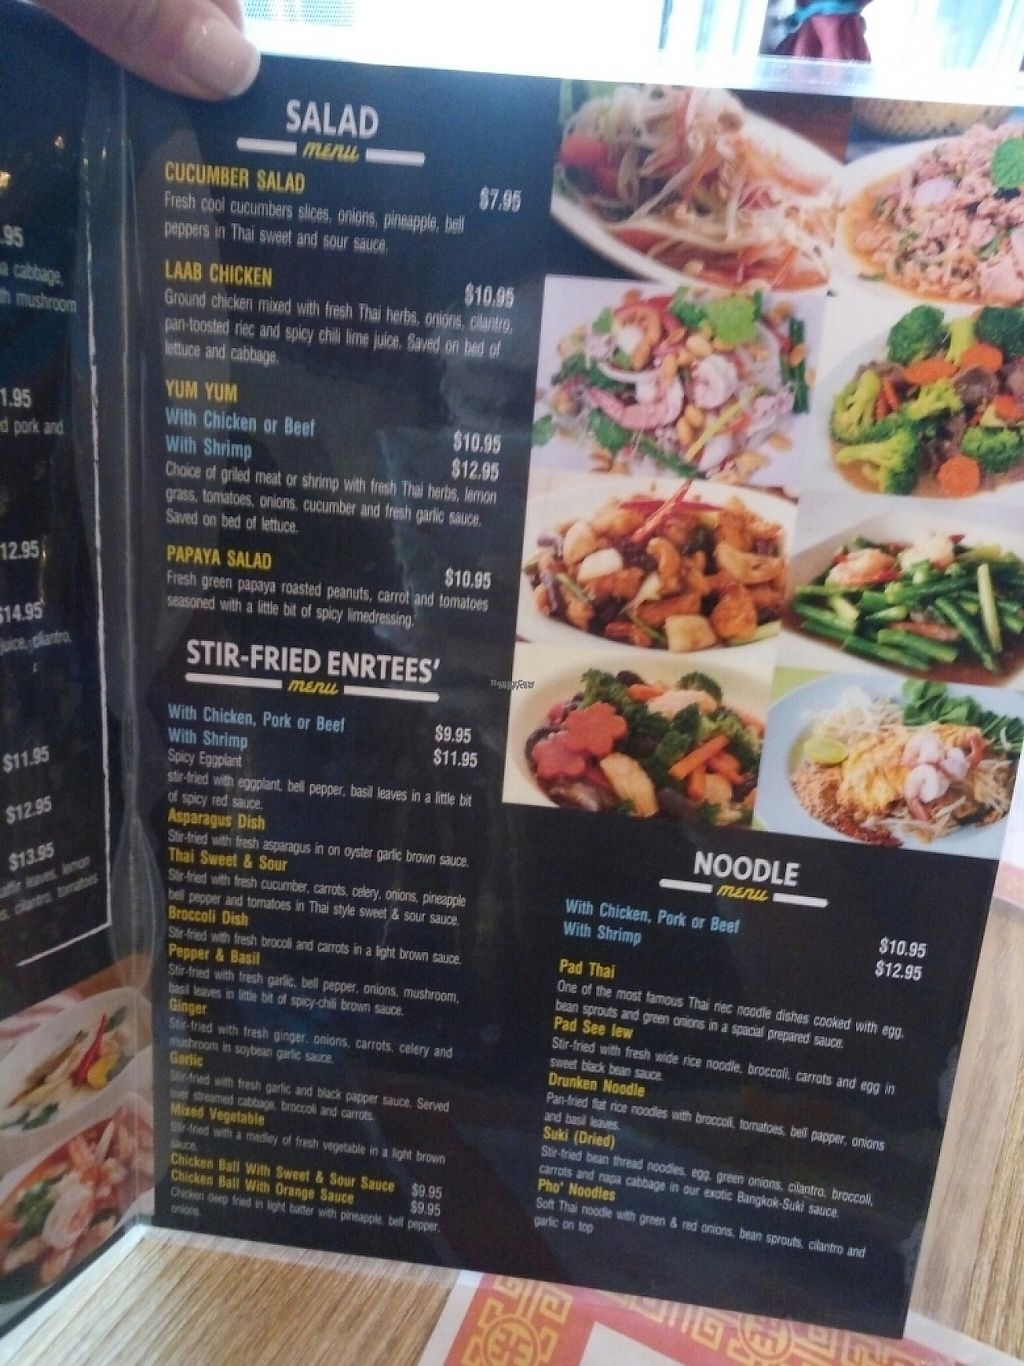 """Photo of Bangkok Thai Cuisine   by <a href=""""/members/profile/IsiDixie"""">IsiDixie</a> <br/>Menú  <br/> March 24, 2017  - <a href='/contact/abuse/image/89173/240130'>Report</a>"""